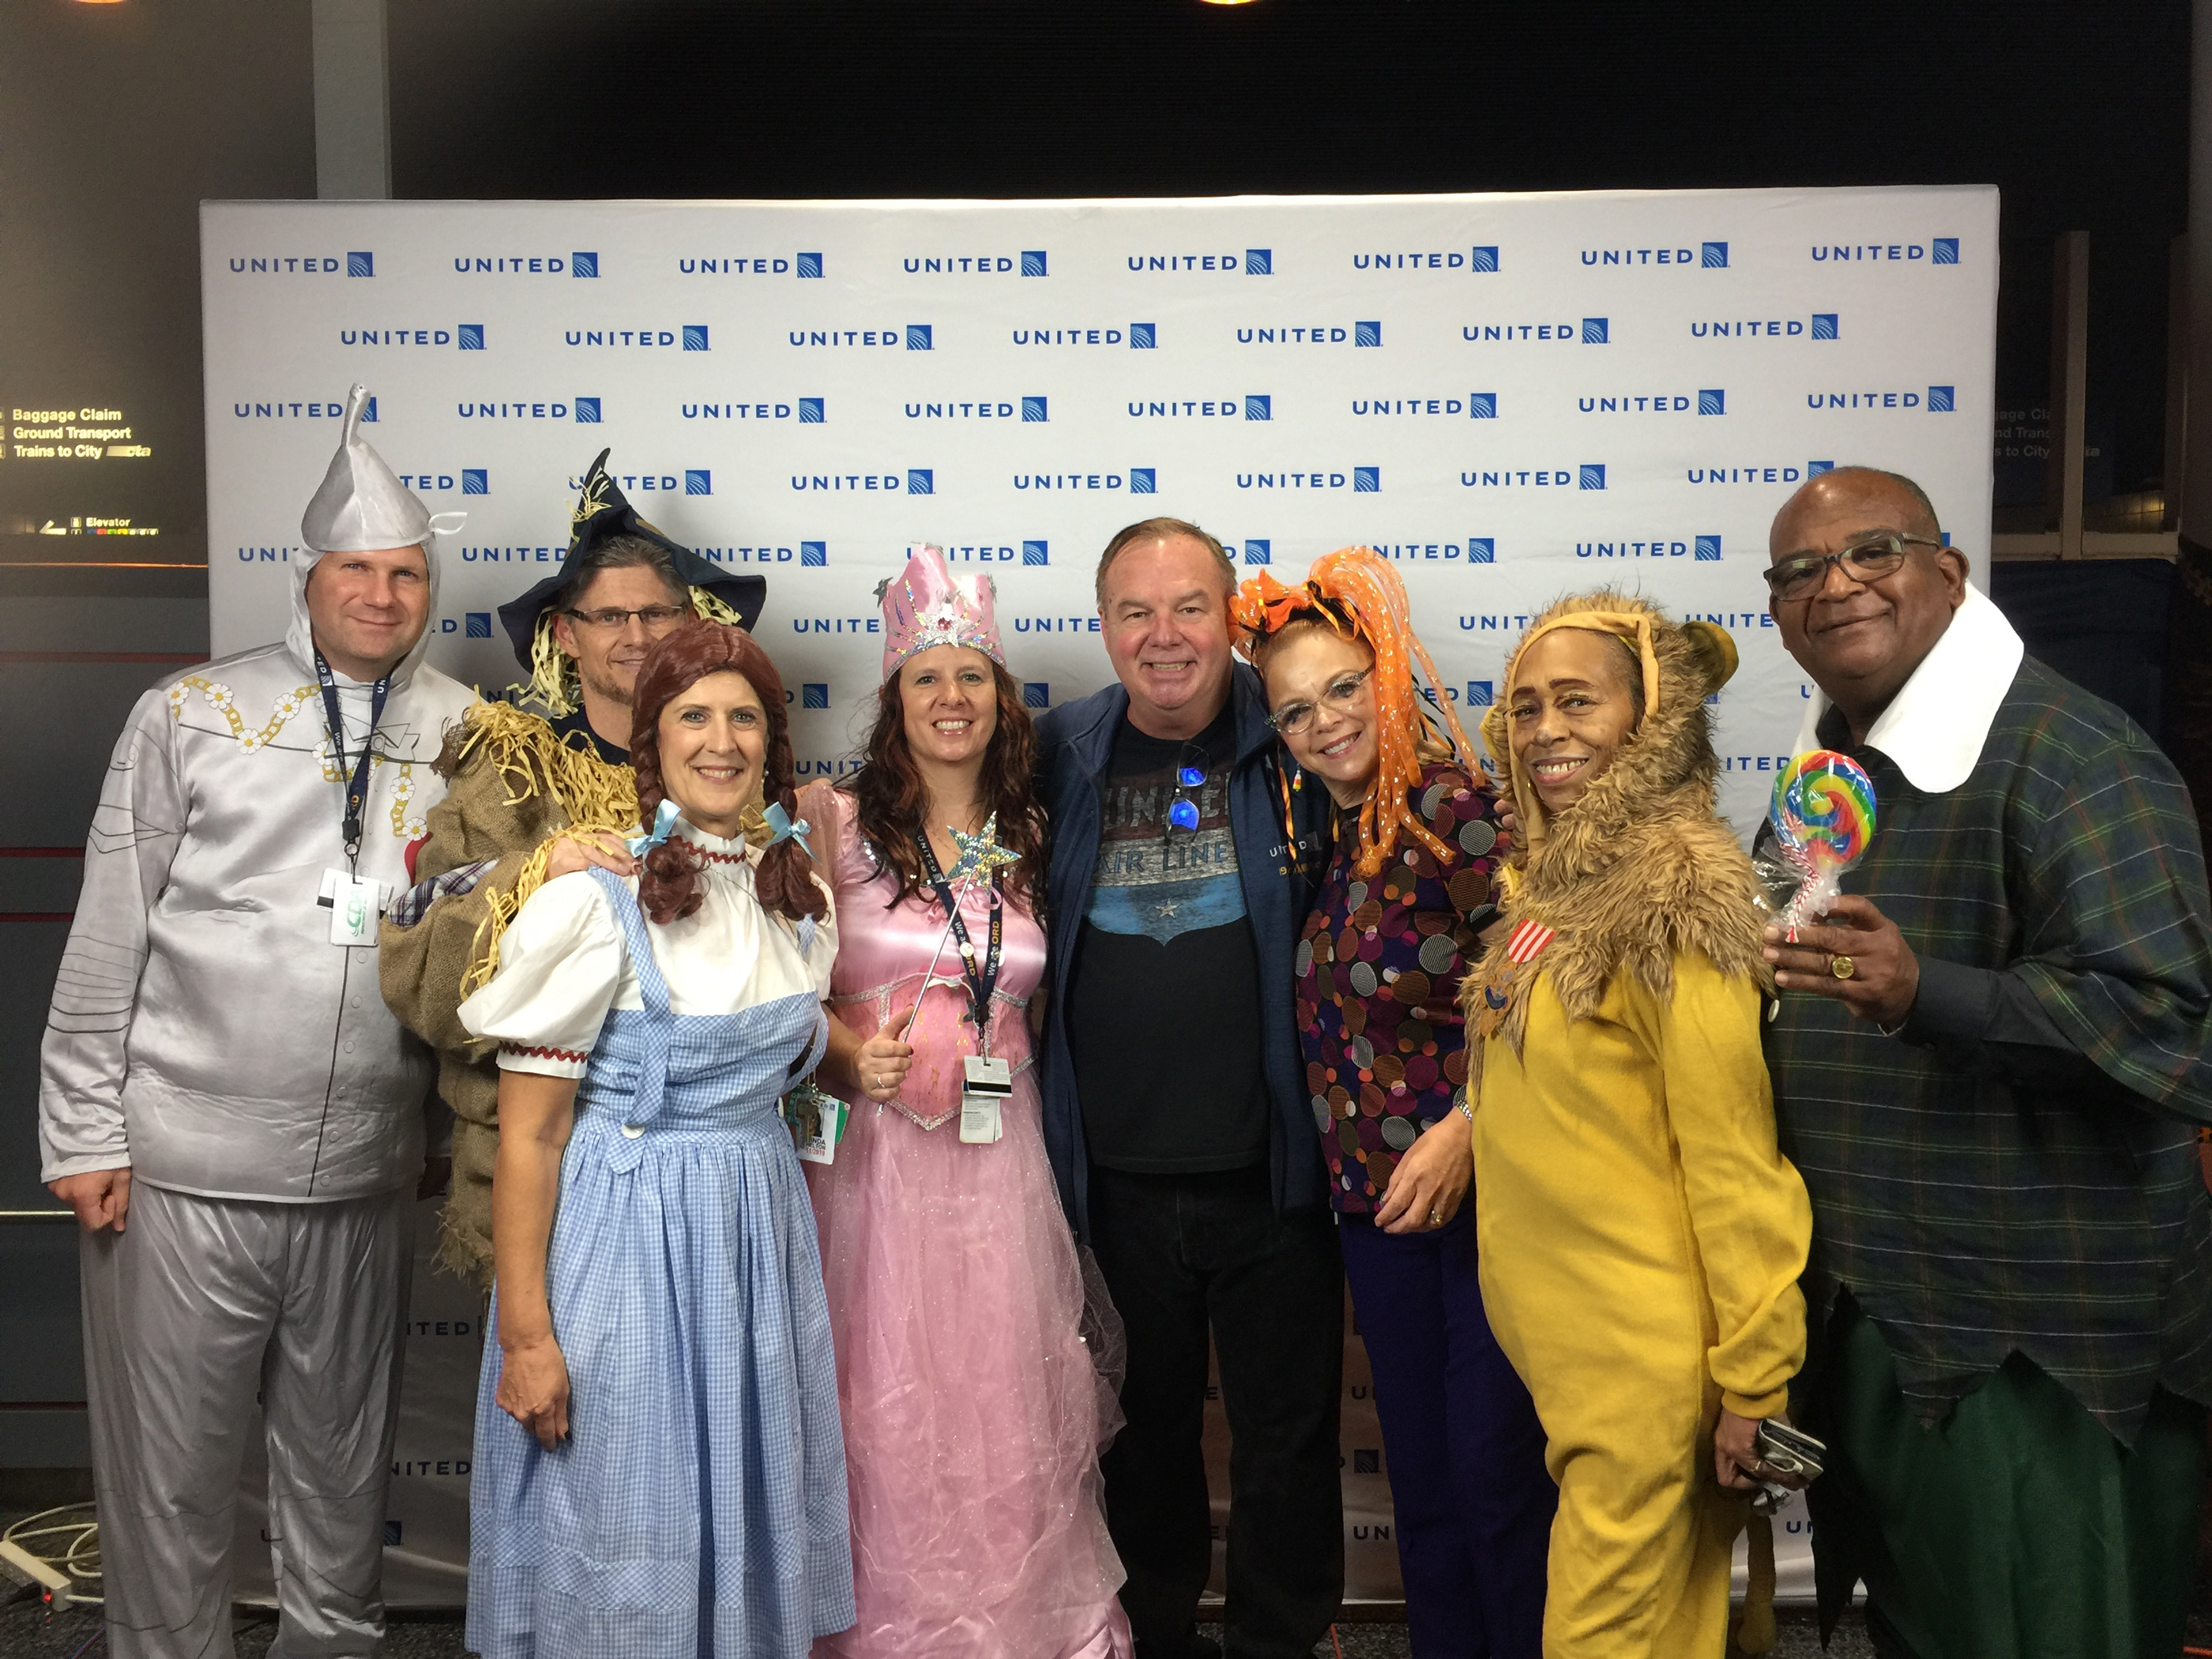 Tom Stuker with United employees at ORD that dressed up for Halloween in 2018.